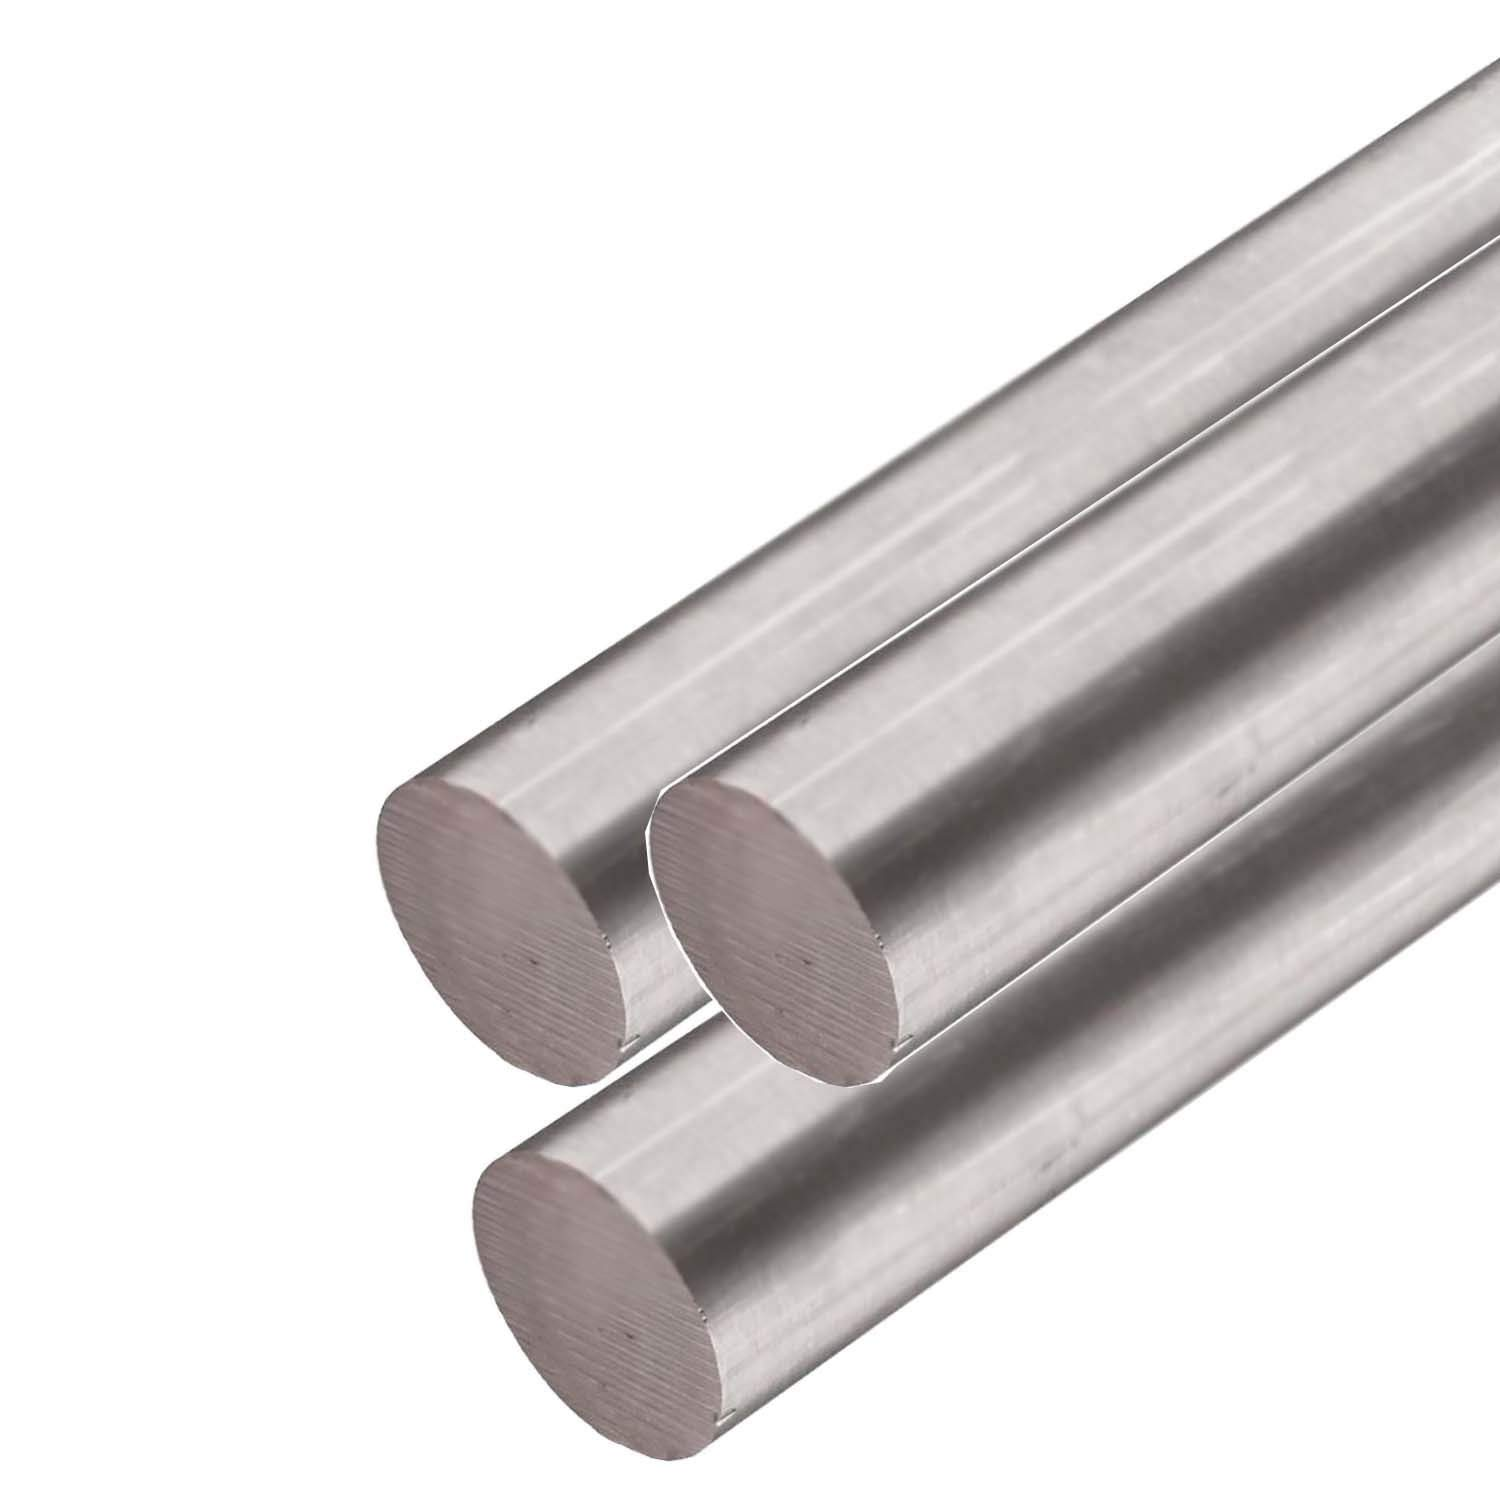 Online Metal Supply 15-5 Stainless Steel Round Rod, 0.131 (1/8 inch Oversized) x 12 Feet (3 Pieces, 48'' Long) by Online Metal Supply